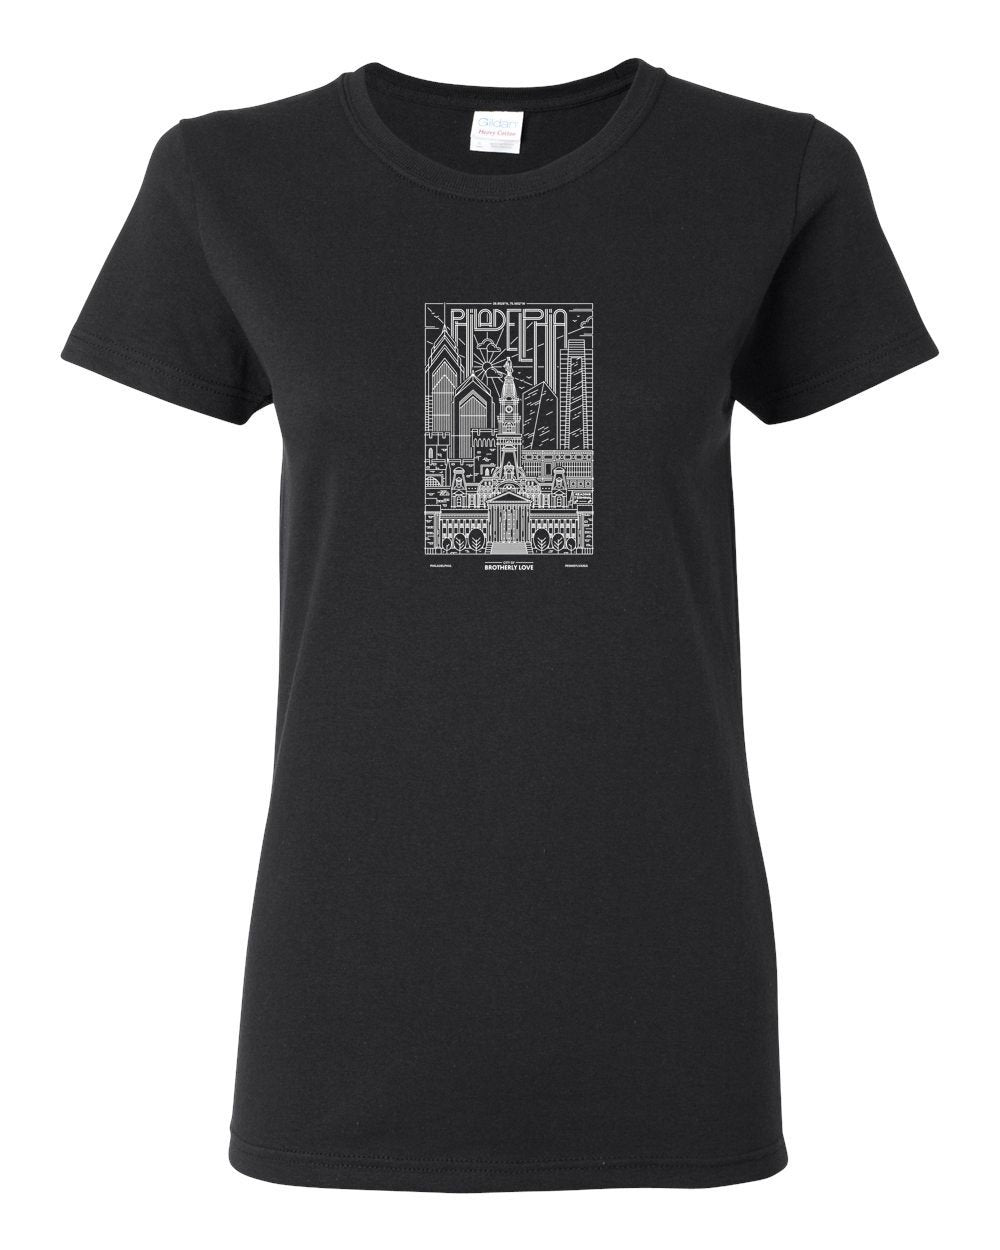 Philadelphia Skyline V2 (White Ink On Black) LADIES Missy-Fit T-Shirt